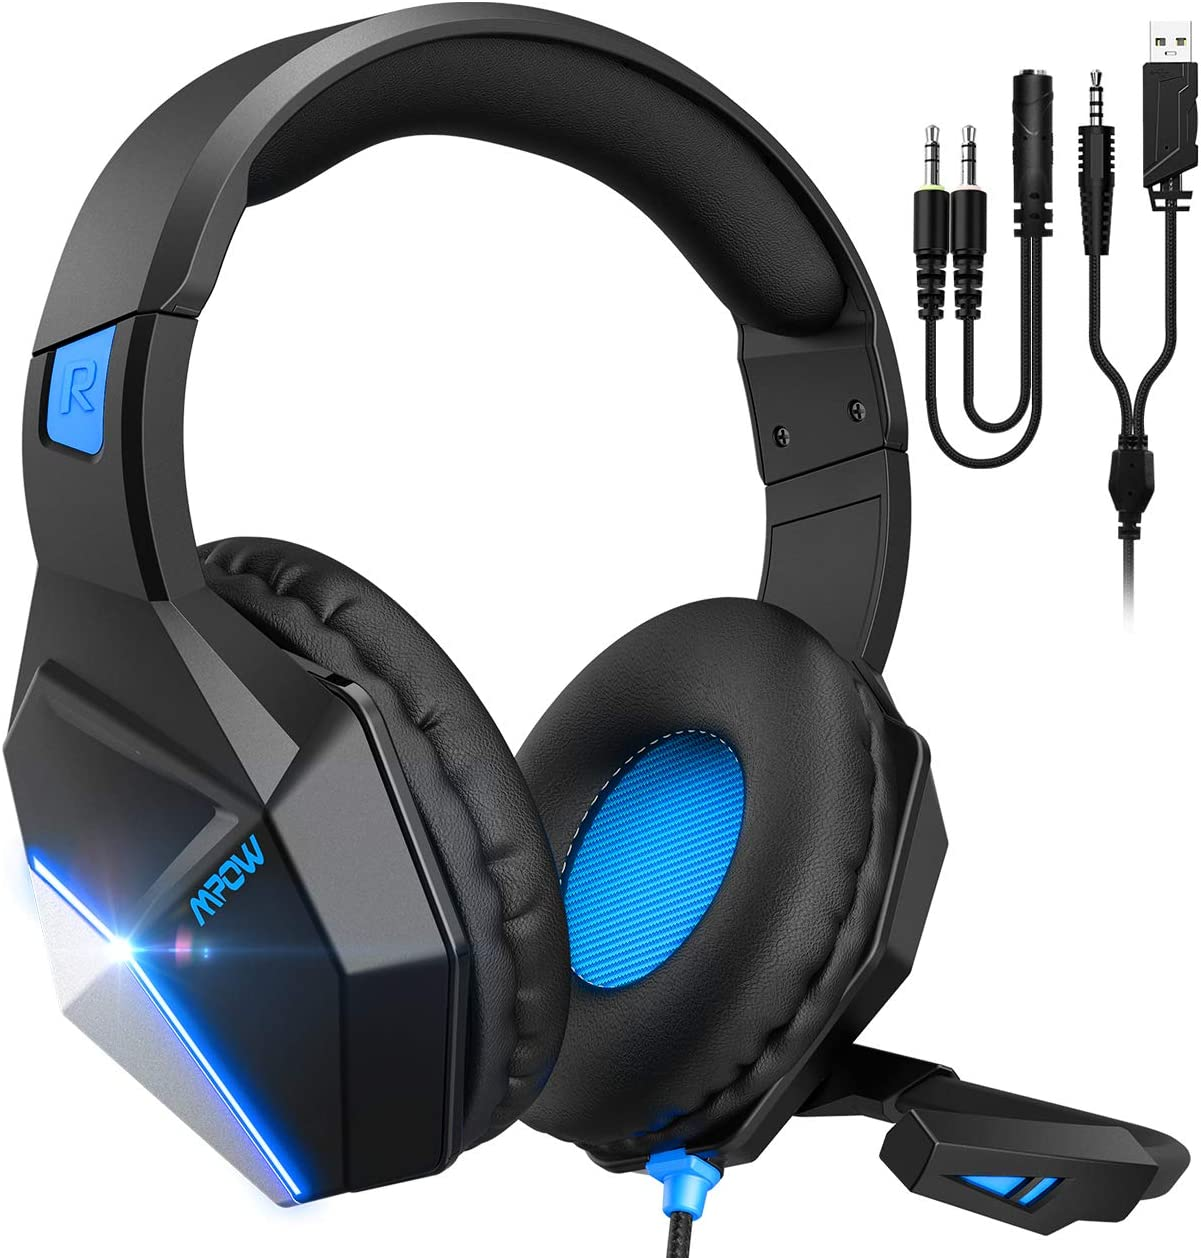 Mpow EG10 Gaming Headset for PS4, PC, Xbox One Controller,Over-Ear Headphones with Mic Noise Cancelling, Switchable LED Light Soft Earmuffs for Laptop Mac Nintendo Switch Pad MAC Game(2020 Edition)